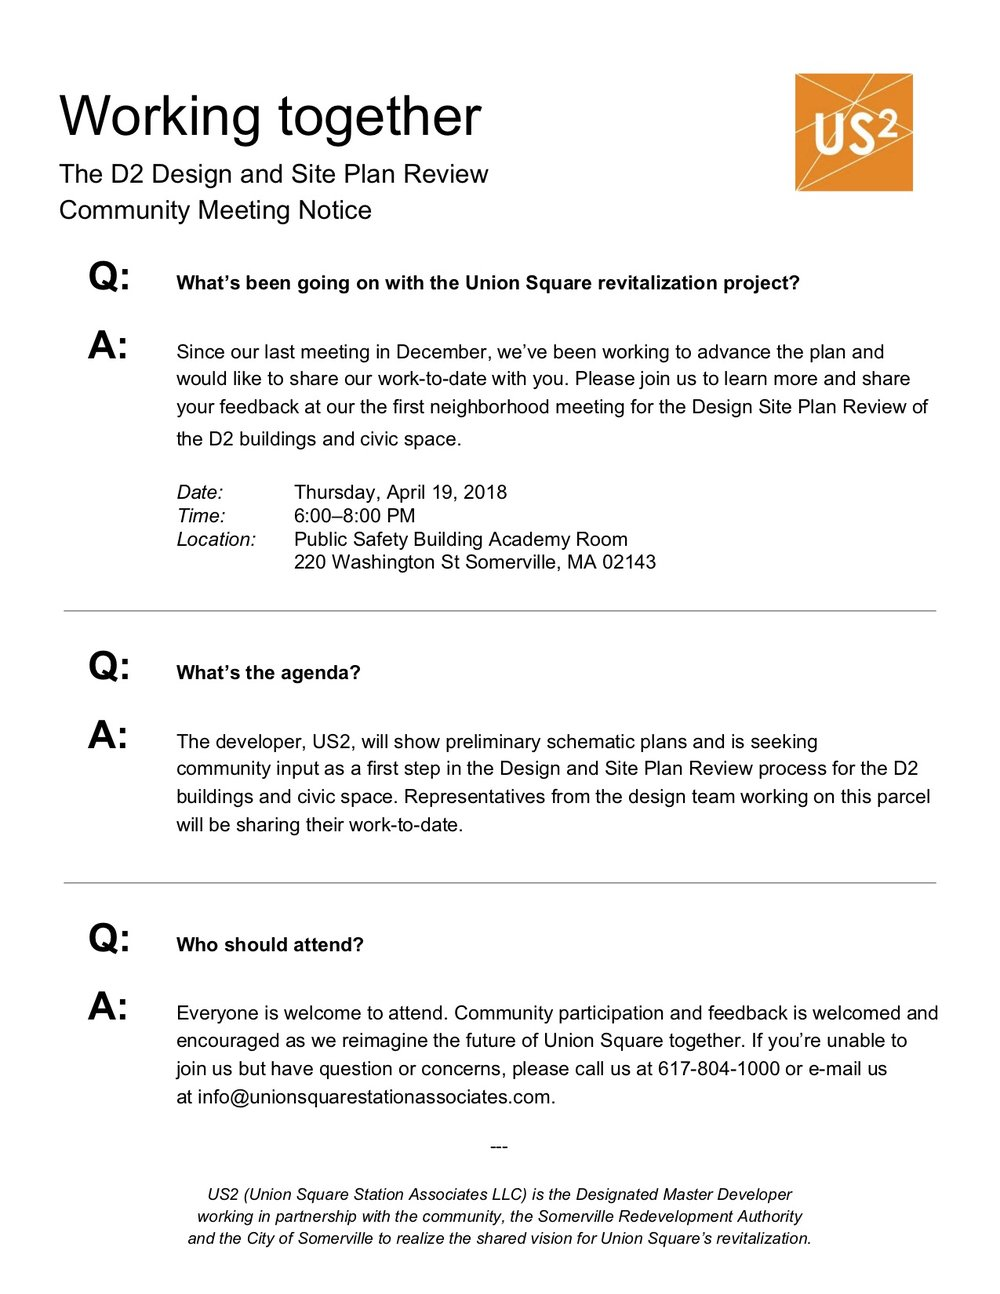 US2 Working together community meeting notice 4.5.18.jpg